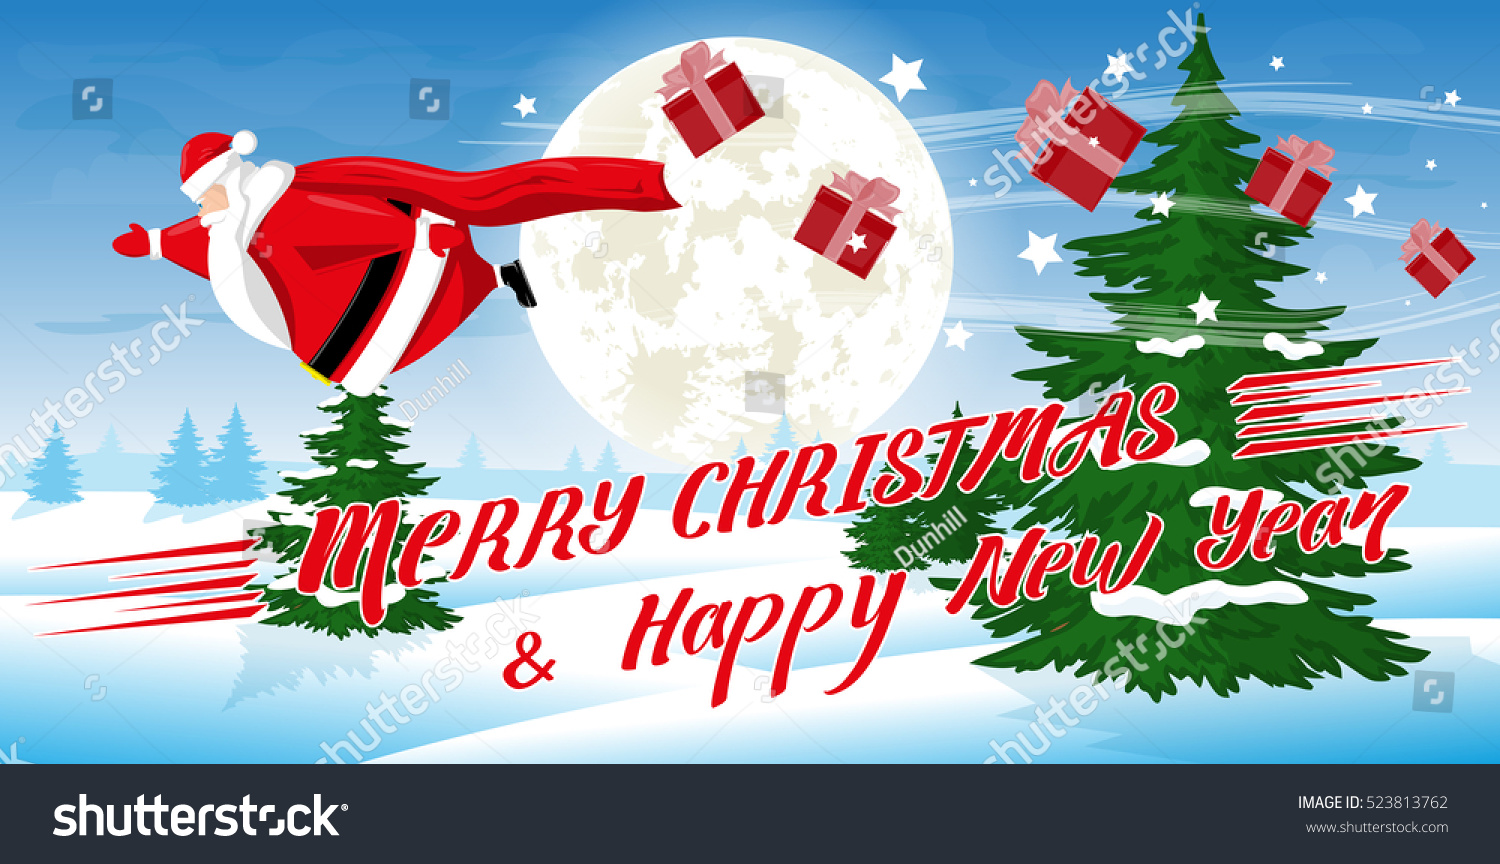 Merry Christmas Happy New Year Landscape Stock Vector (Royalty Free ...